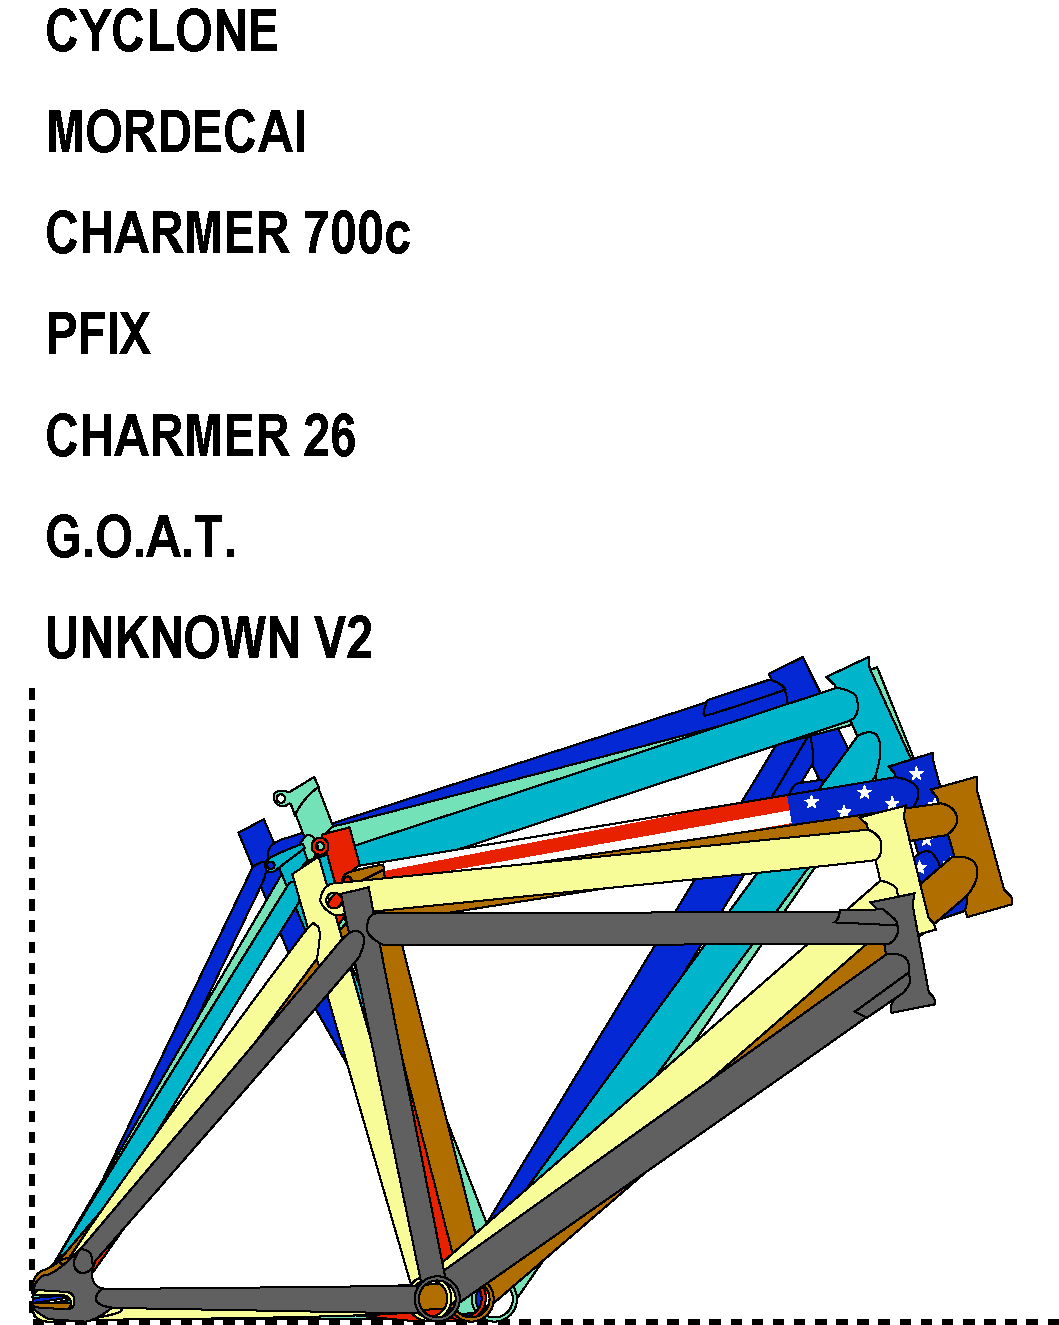 stuff that intrigues me fgfs frame geometry comparison